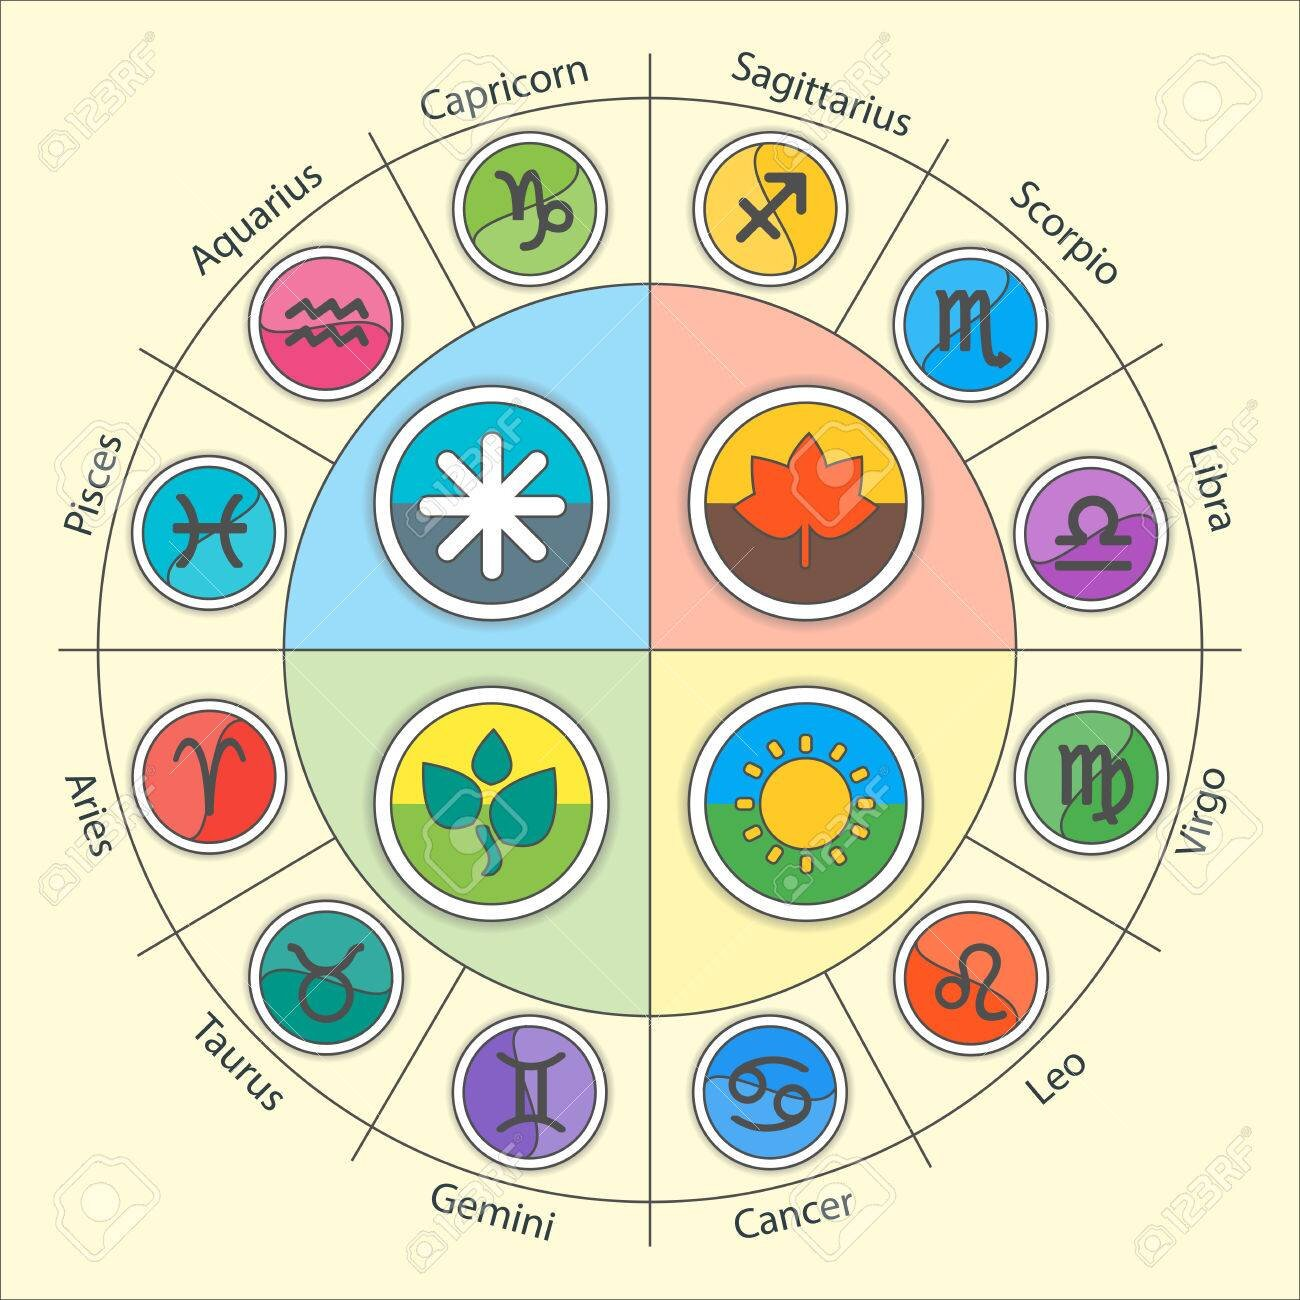 45608326-zodiac-signs-and-constellations-in-circle-in-flat-style-set-of-colorful-icons-horoscopes-and-zodiaca.jpg